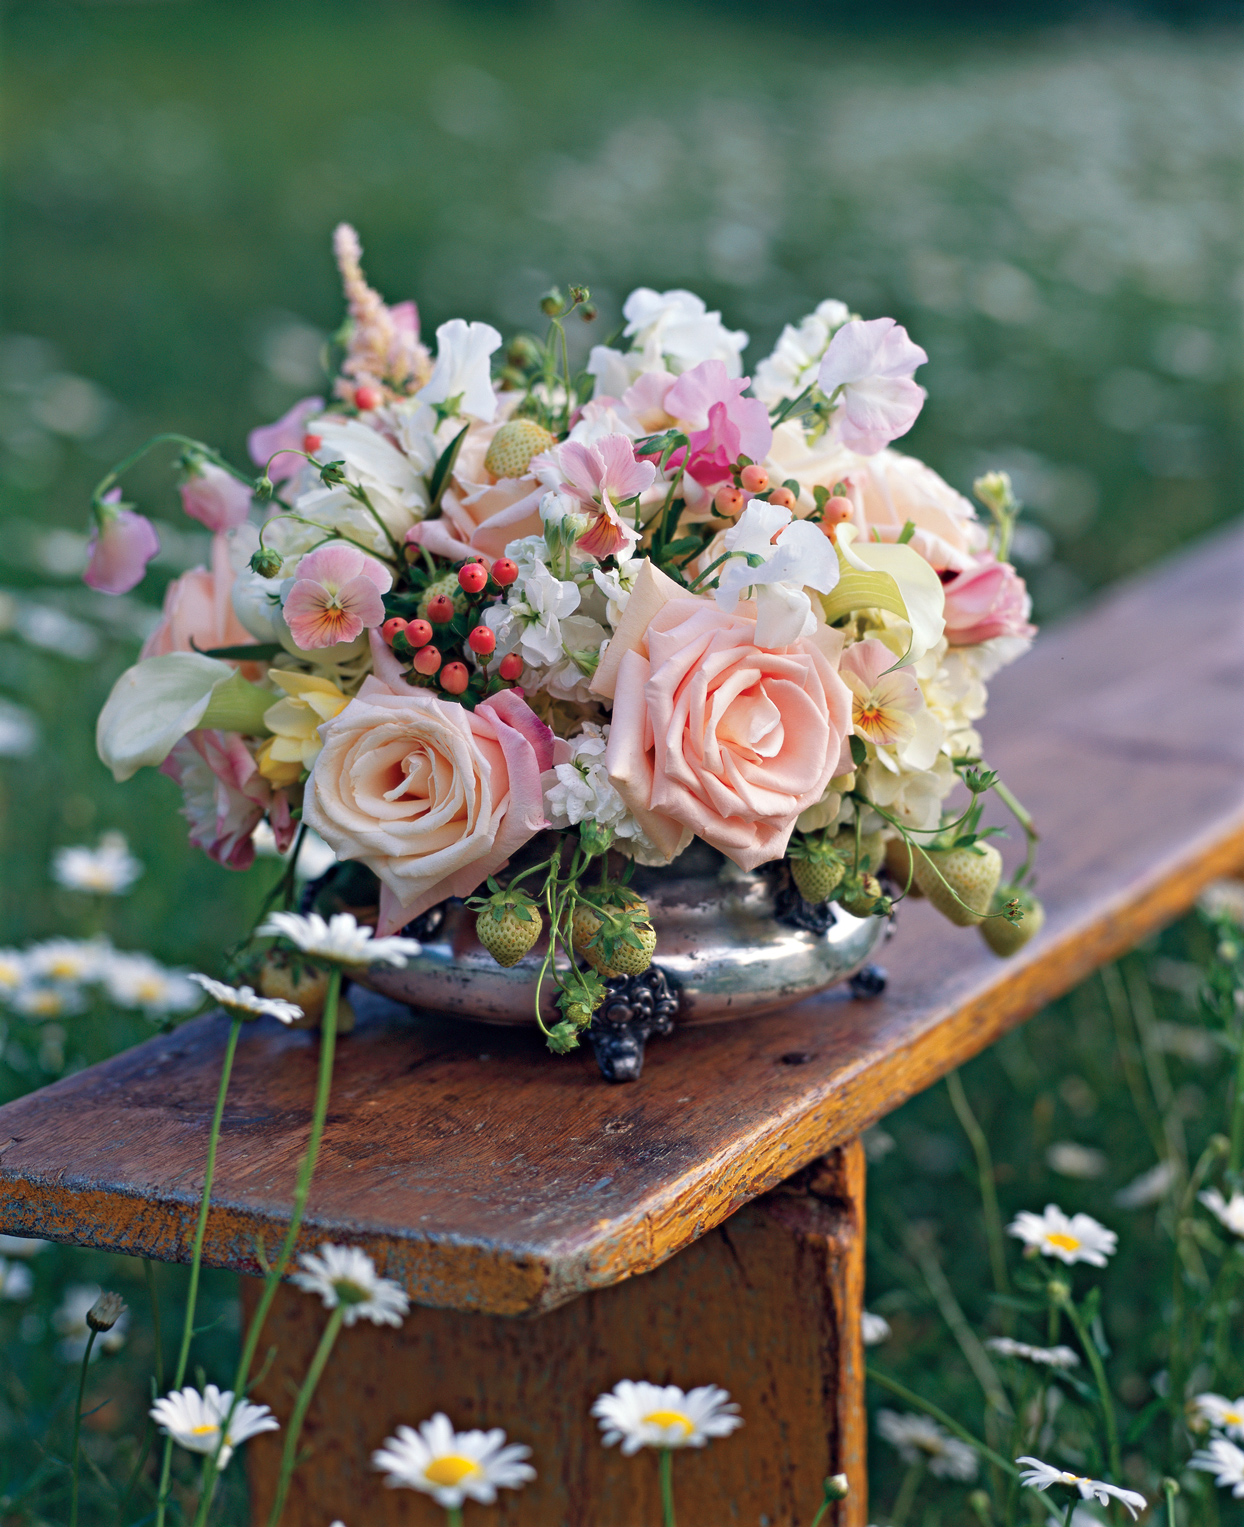 yellow pink flower arrangement on wooden bench